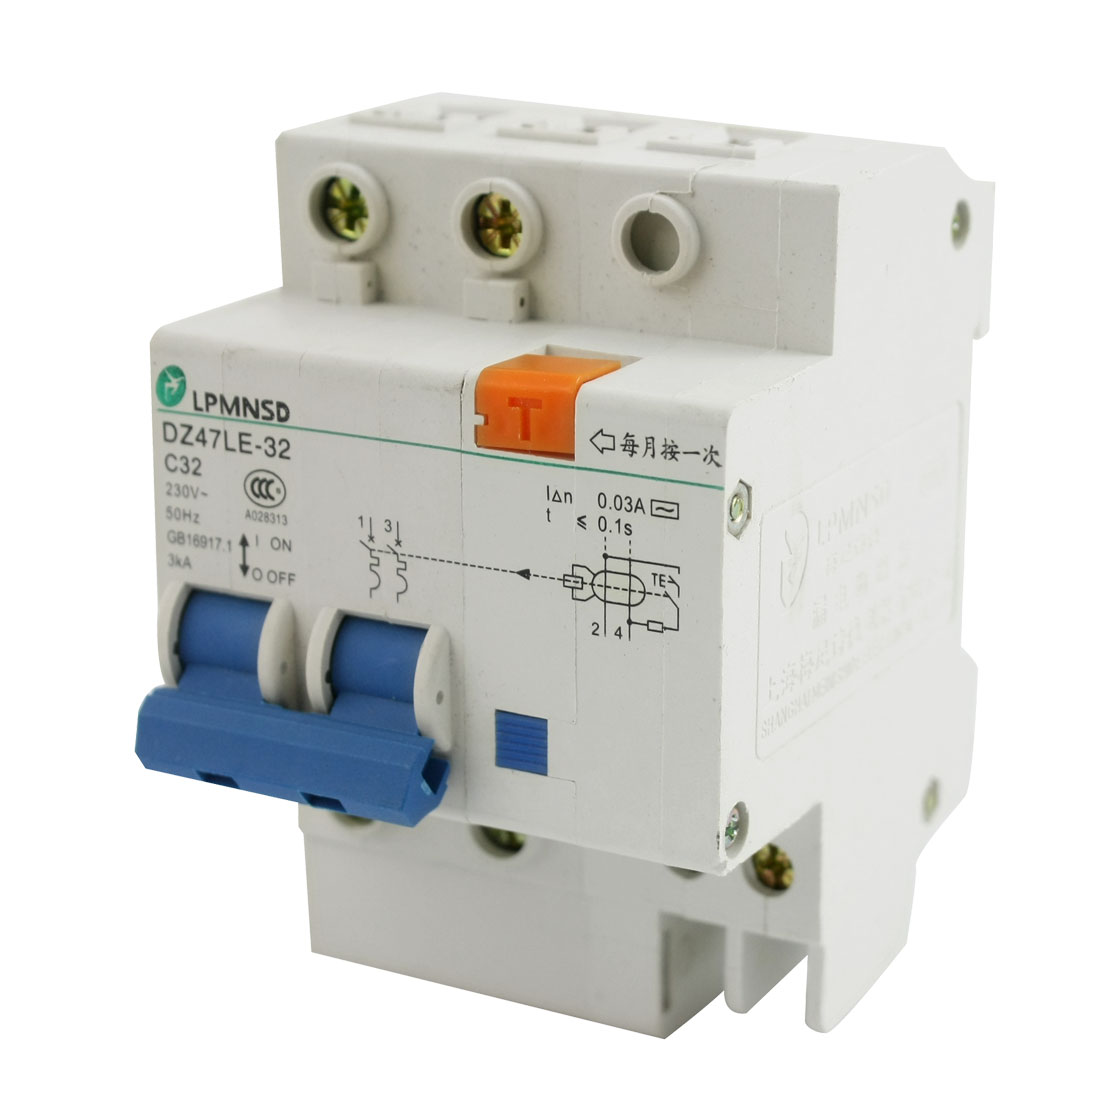 35mm DIN Rail 4 Screw Teminal 2-Pole On/Off Switch Electric Leakage Protection Circuit Breaker AC230V 32A 3KA